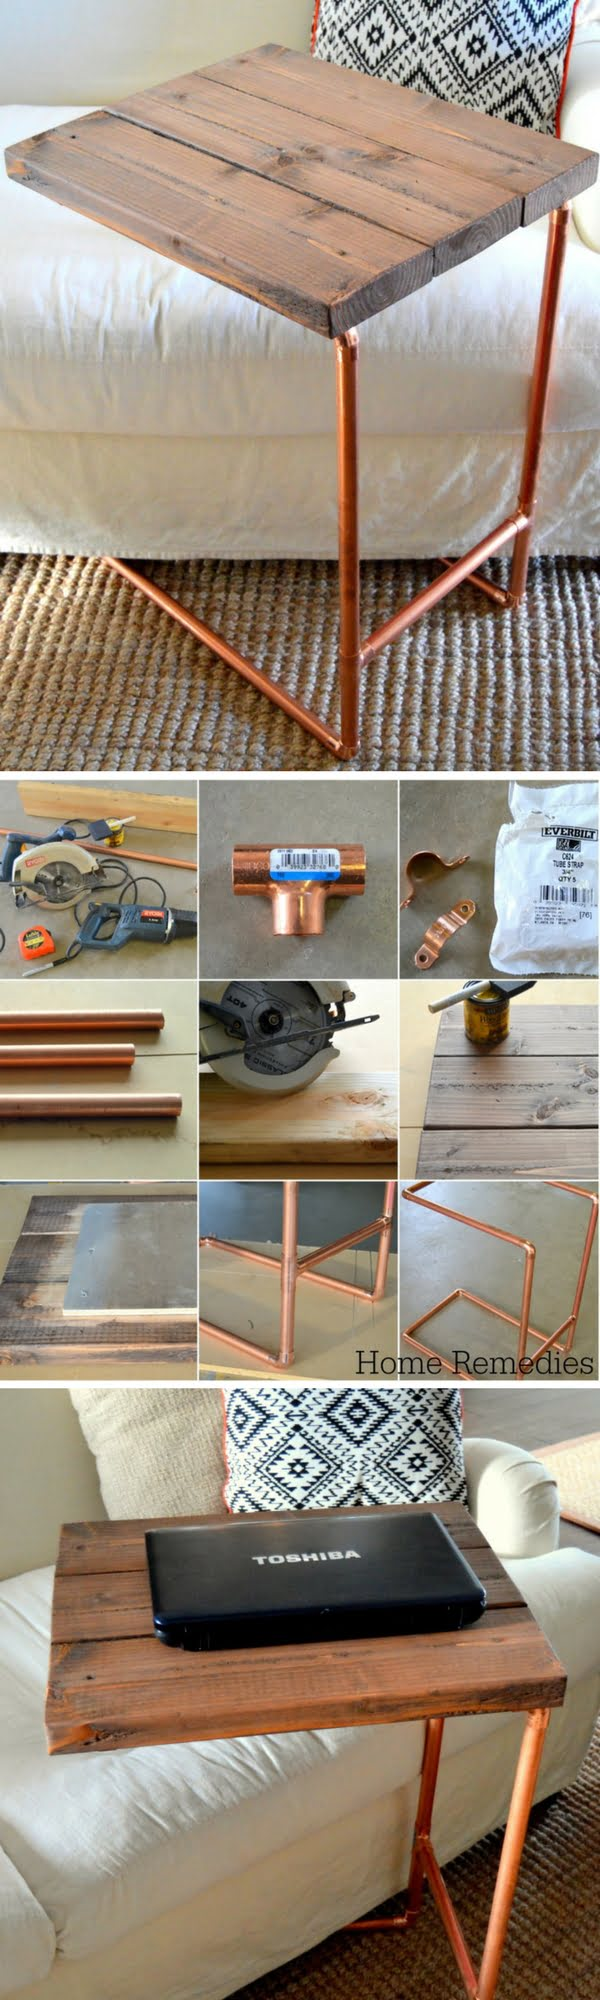 18 Easy DIY Sofa Side Tables You Can Build on a Budget - Check out the tutorial how make a DIY a metal pipe laptop sofa side table